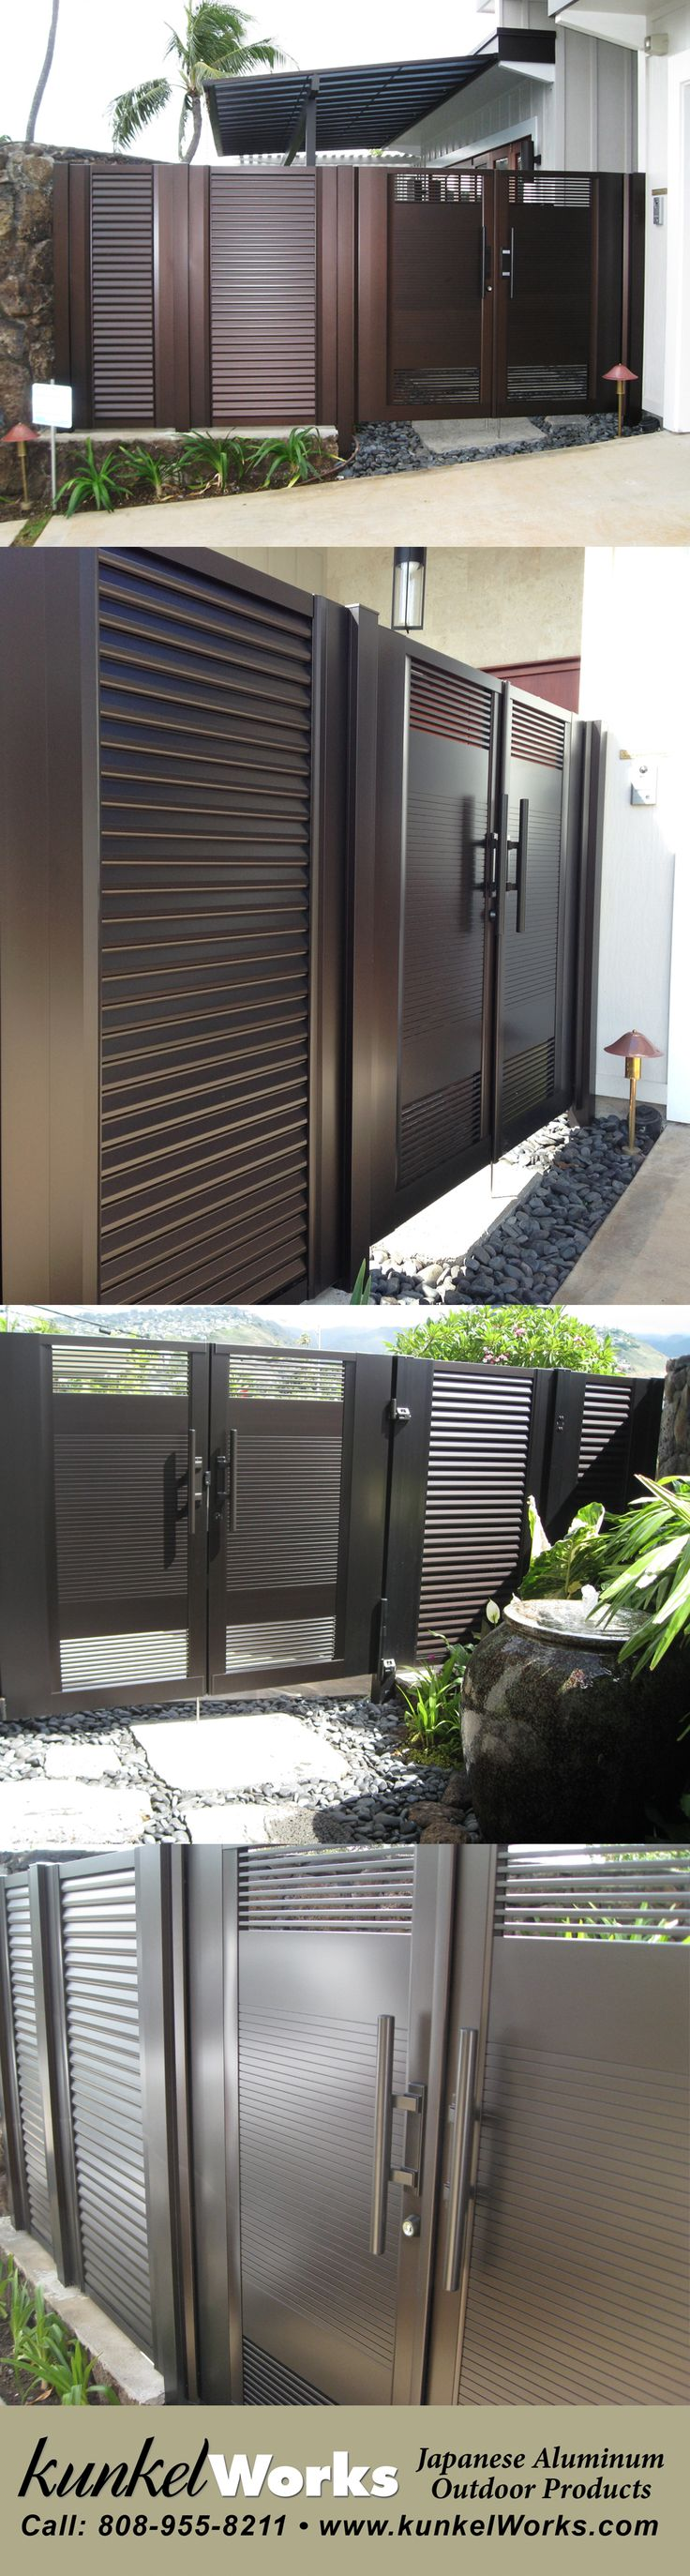 Look at the stunning finished product thats providing a stylish perimeter . With several colors to match the style of your home, check out Kunkelworks Japanese anodized aluminum gates that are weather proof and corrosion resistant.